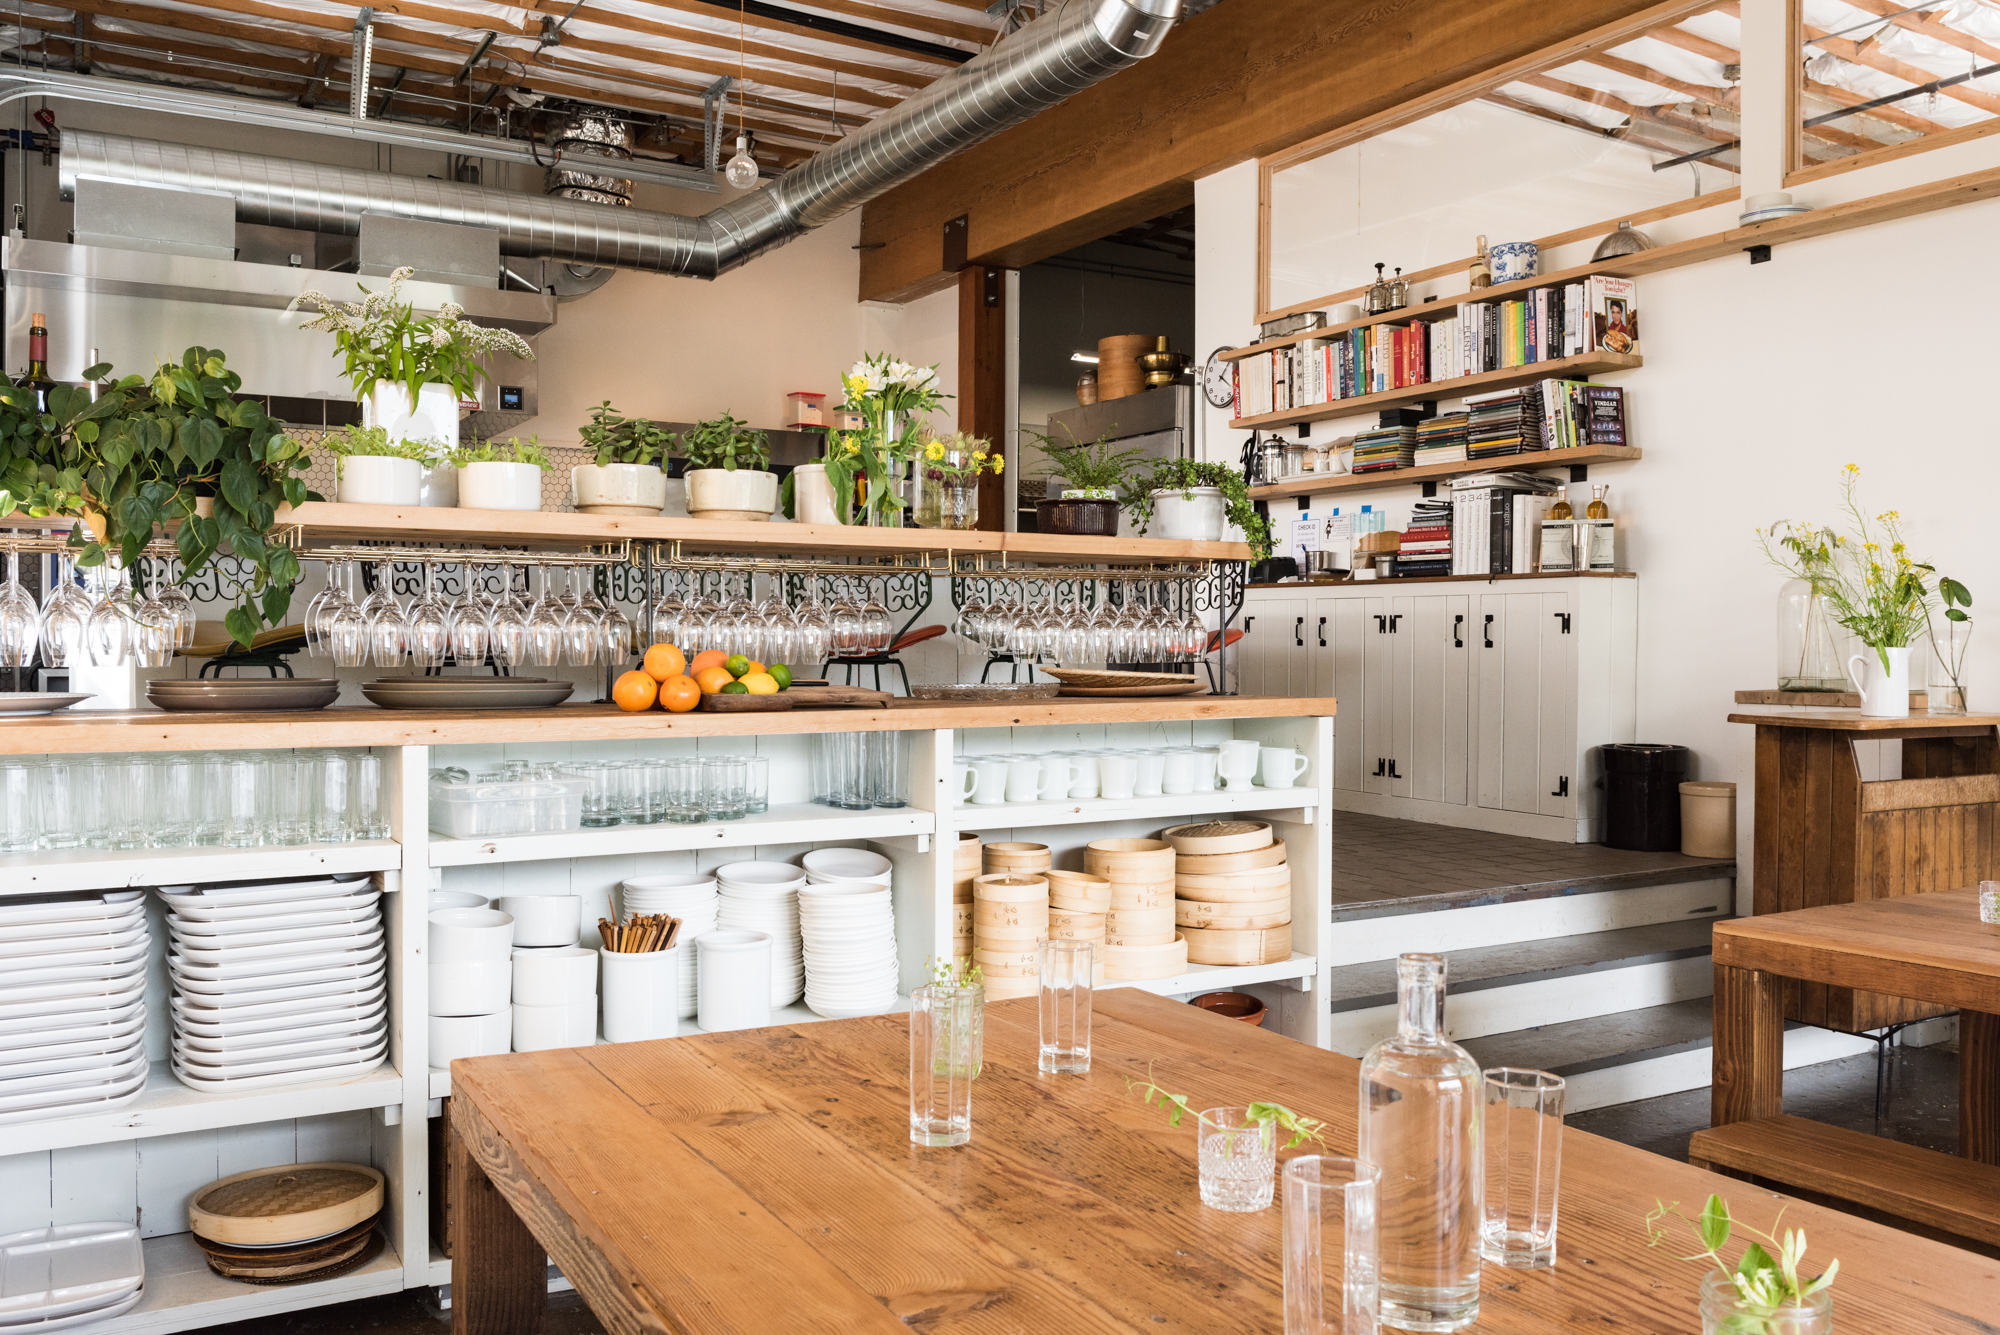 A communal table at Han Oak butts up against a set of built-in shelves next to a staircase, which leads into a small kitchen and chef's counter.